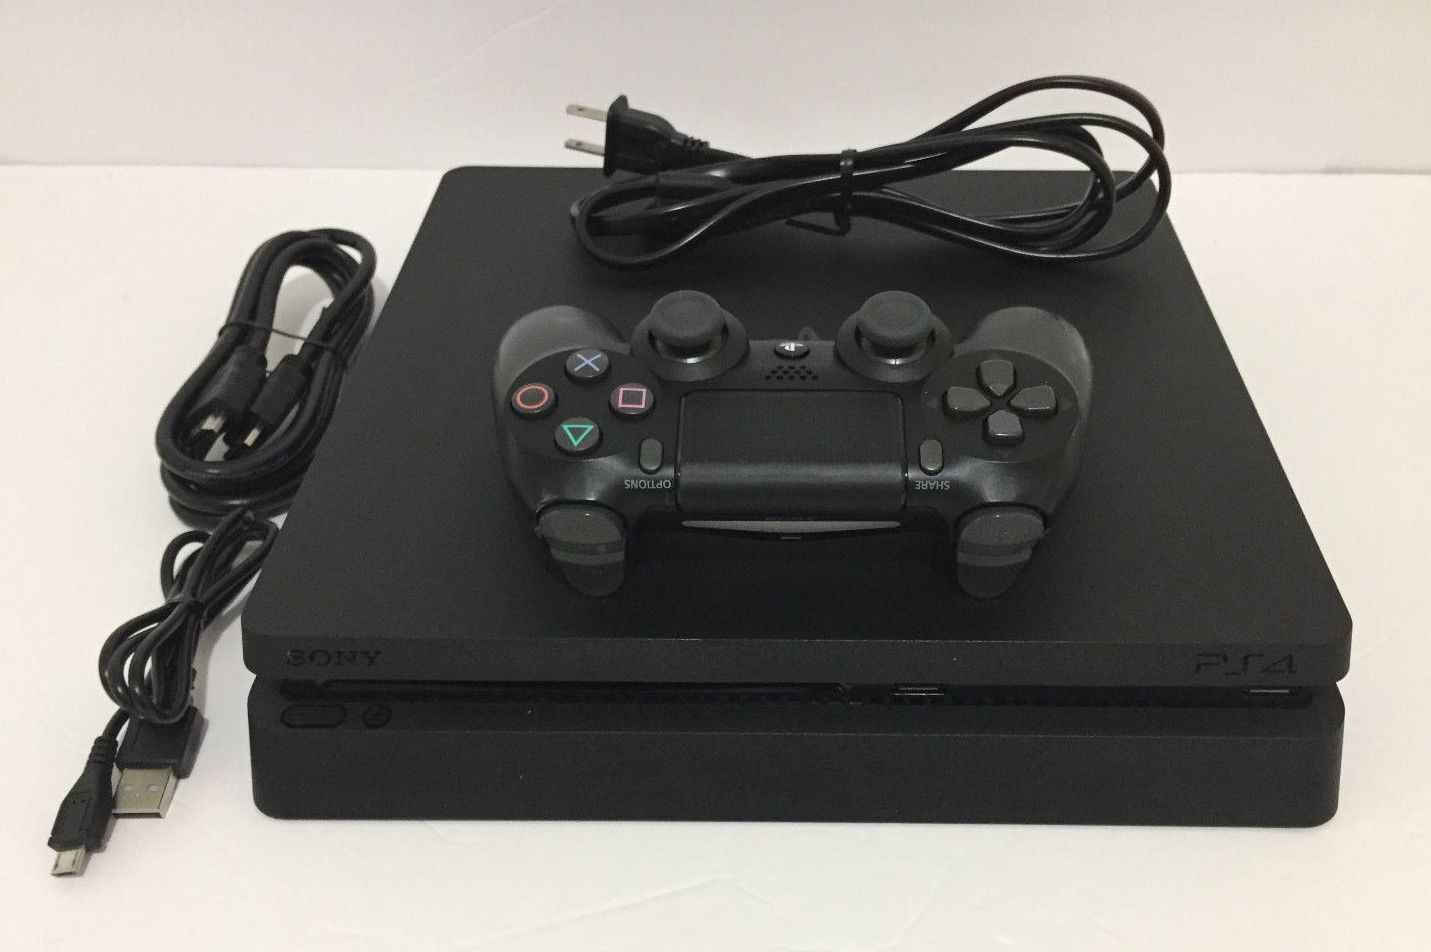 Details About Sony Playstation 4 Ps4 Slim Special Edition Pro